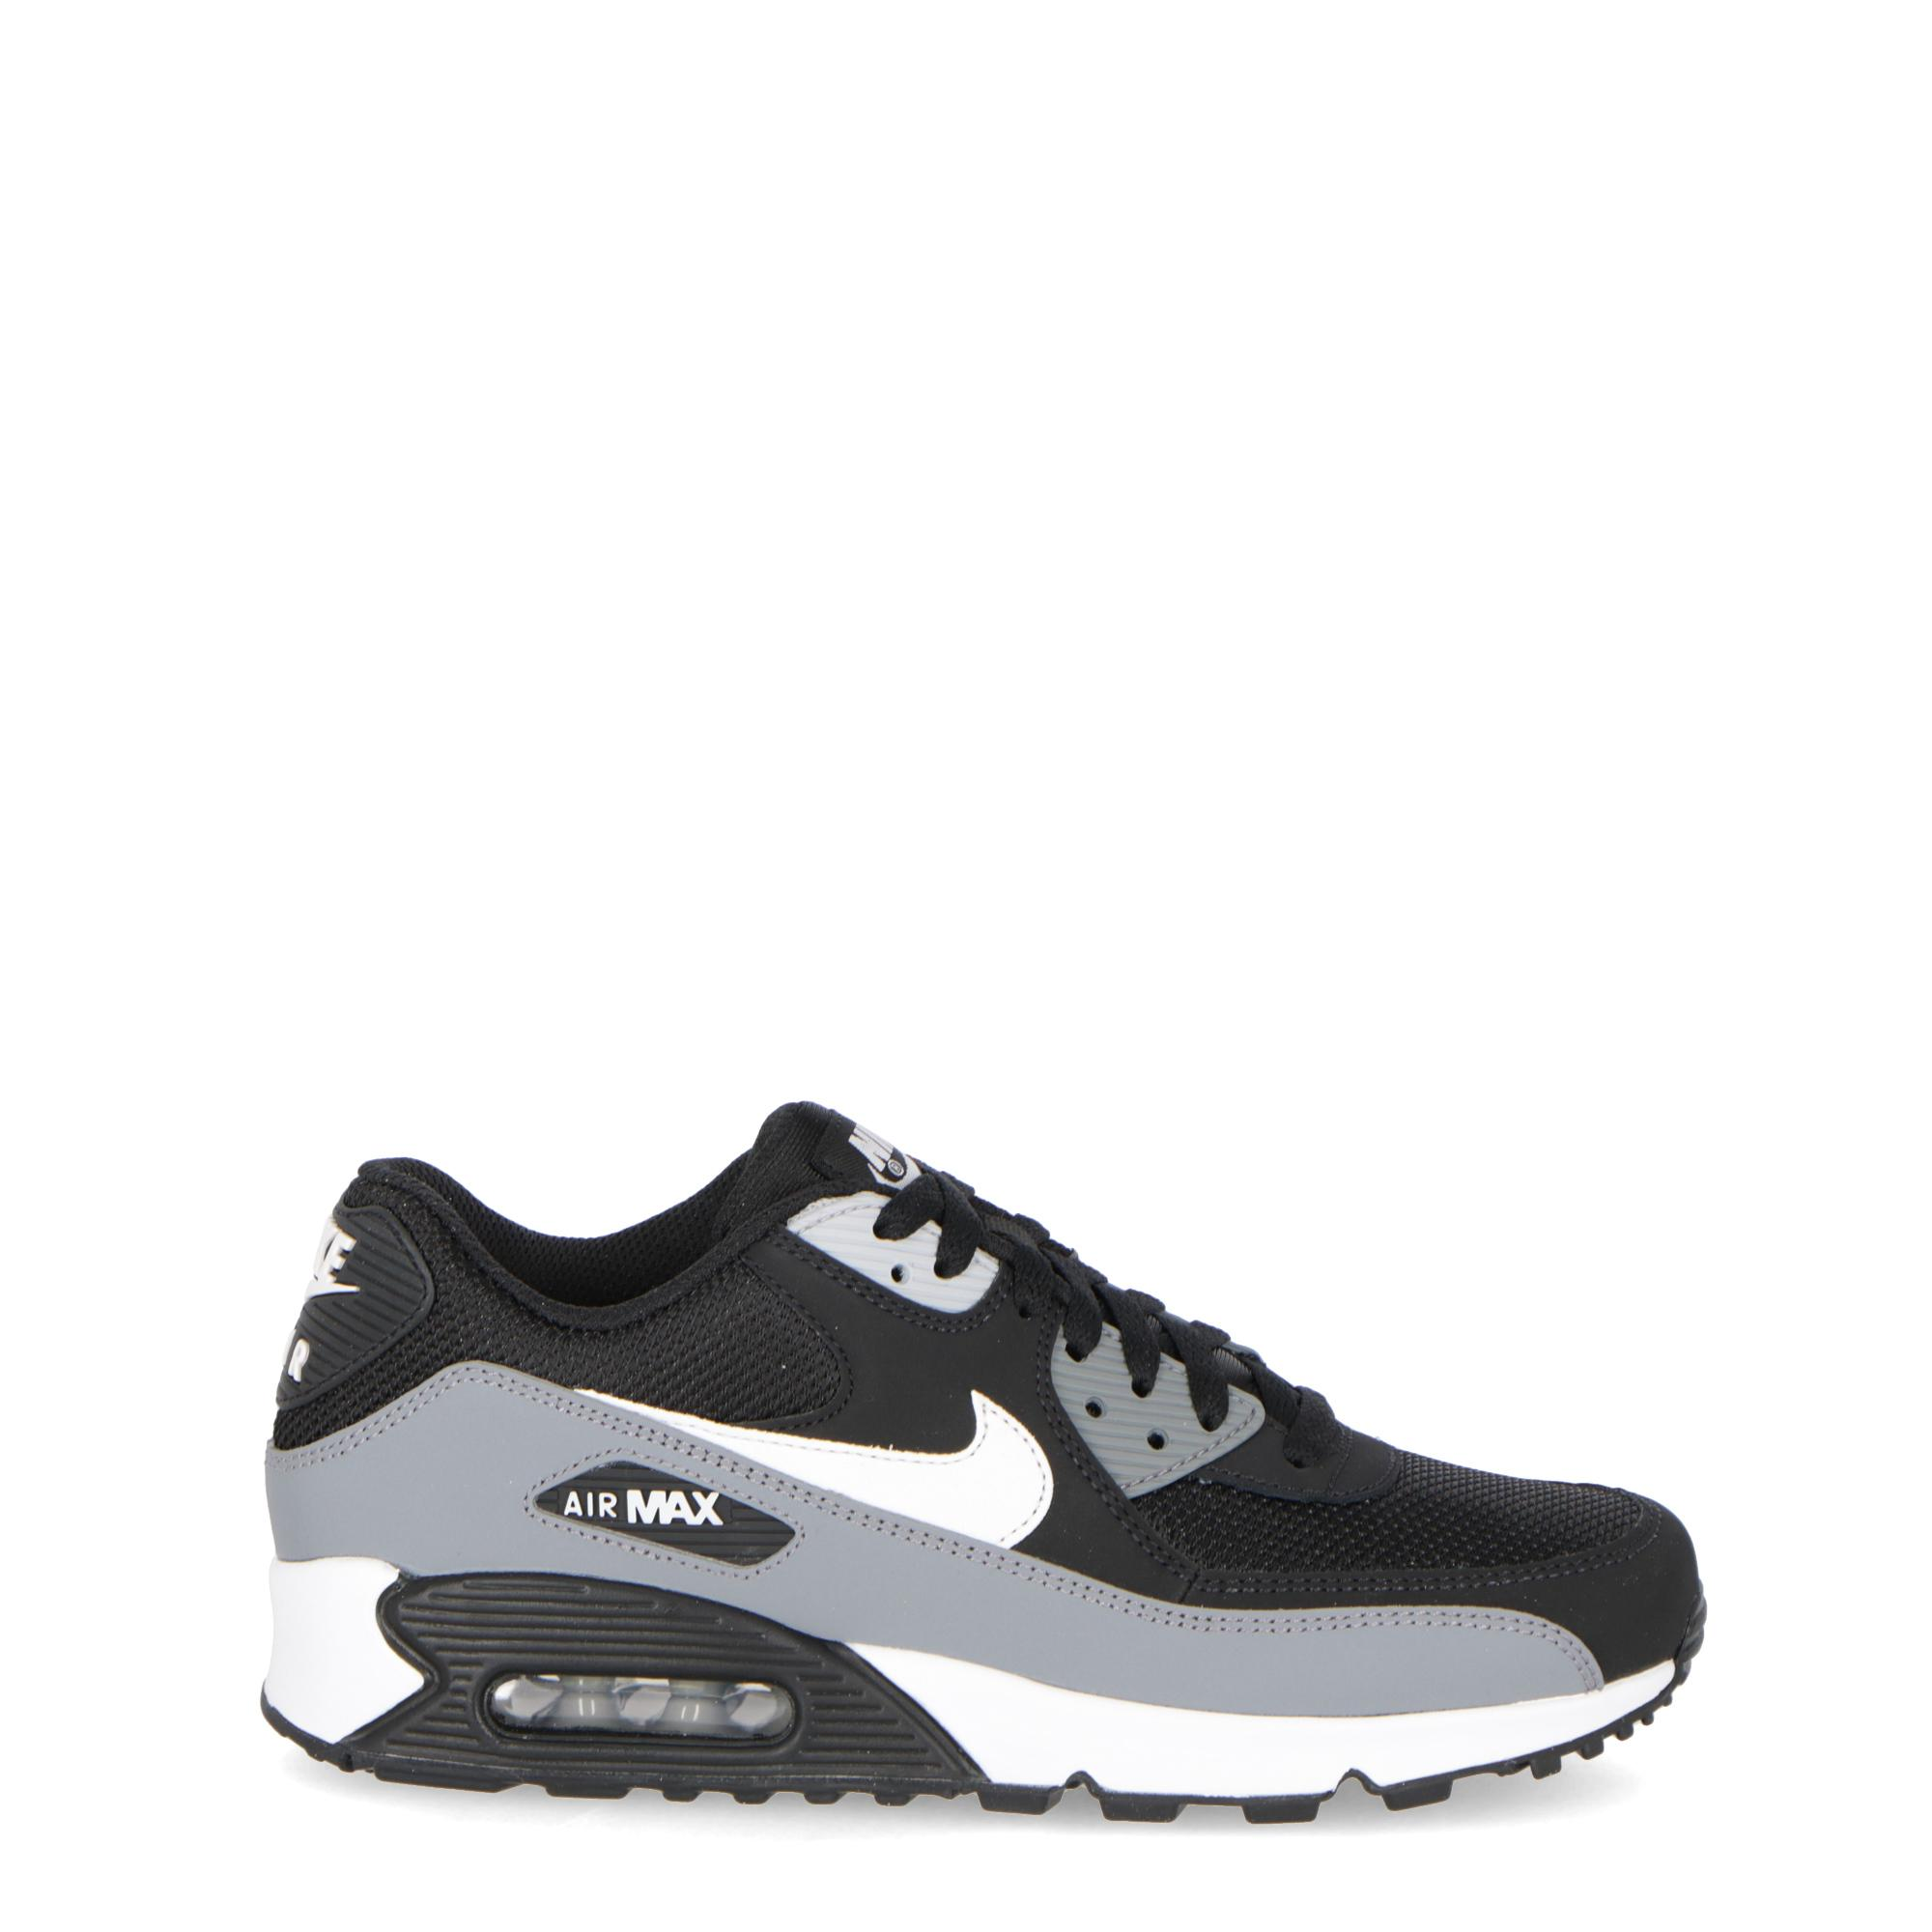 competitive price 0818e df380 Nike Air Max 90 Essential br   Black white grey